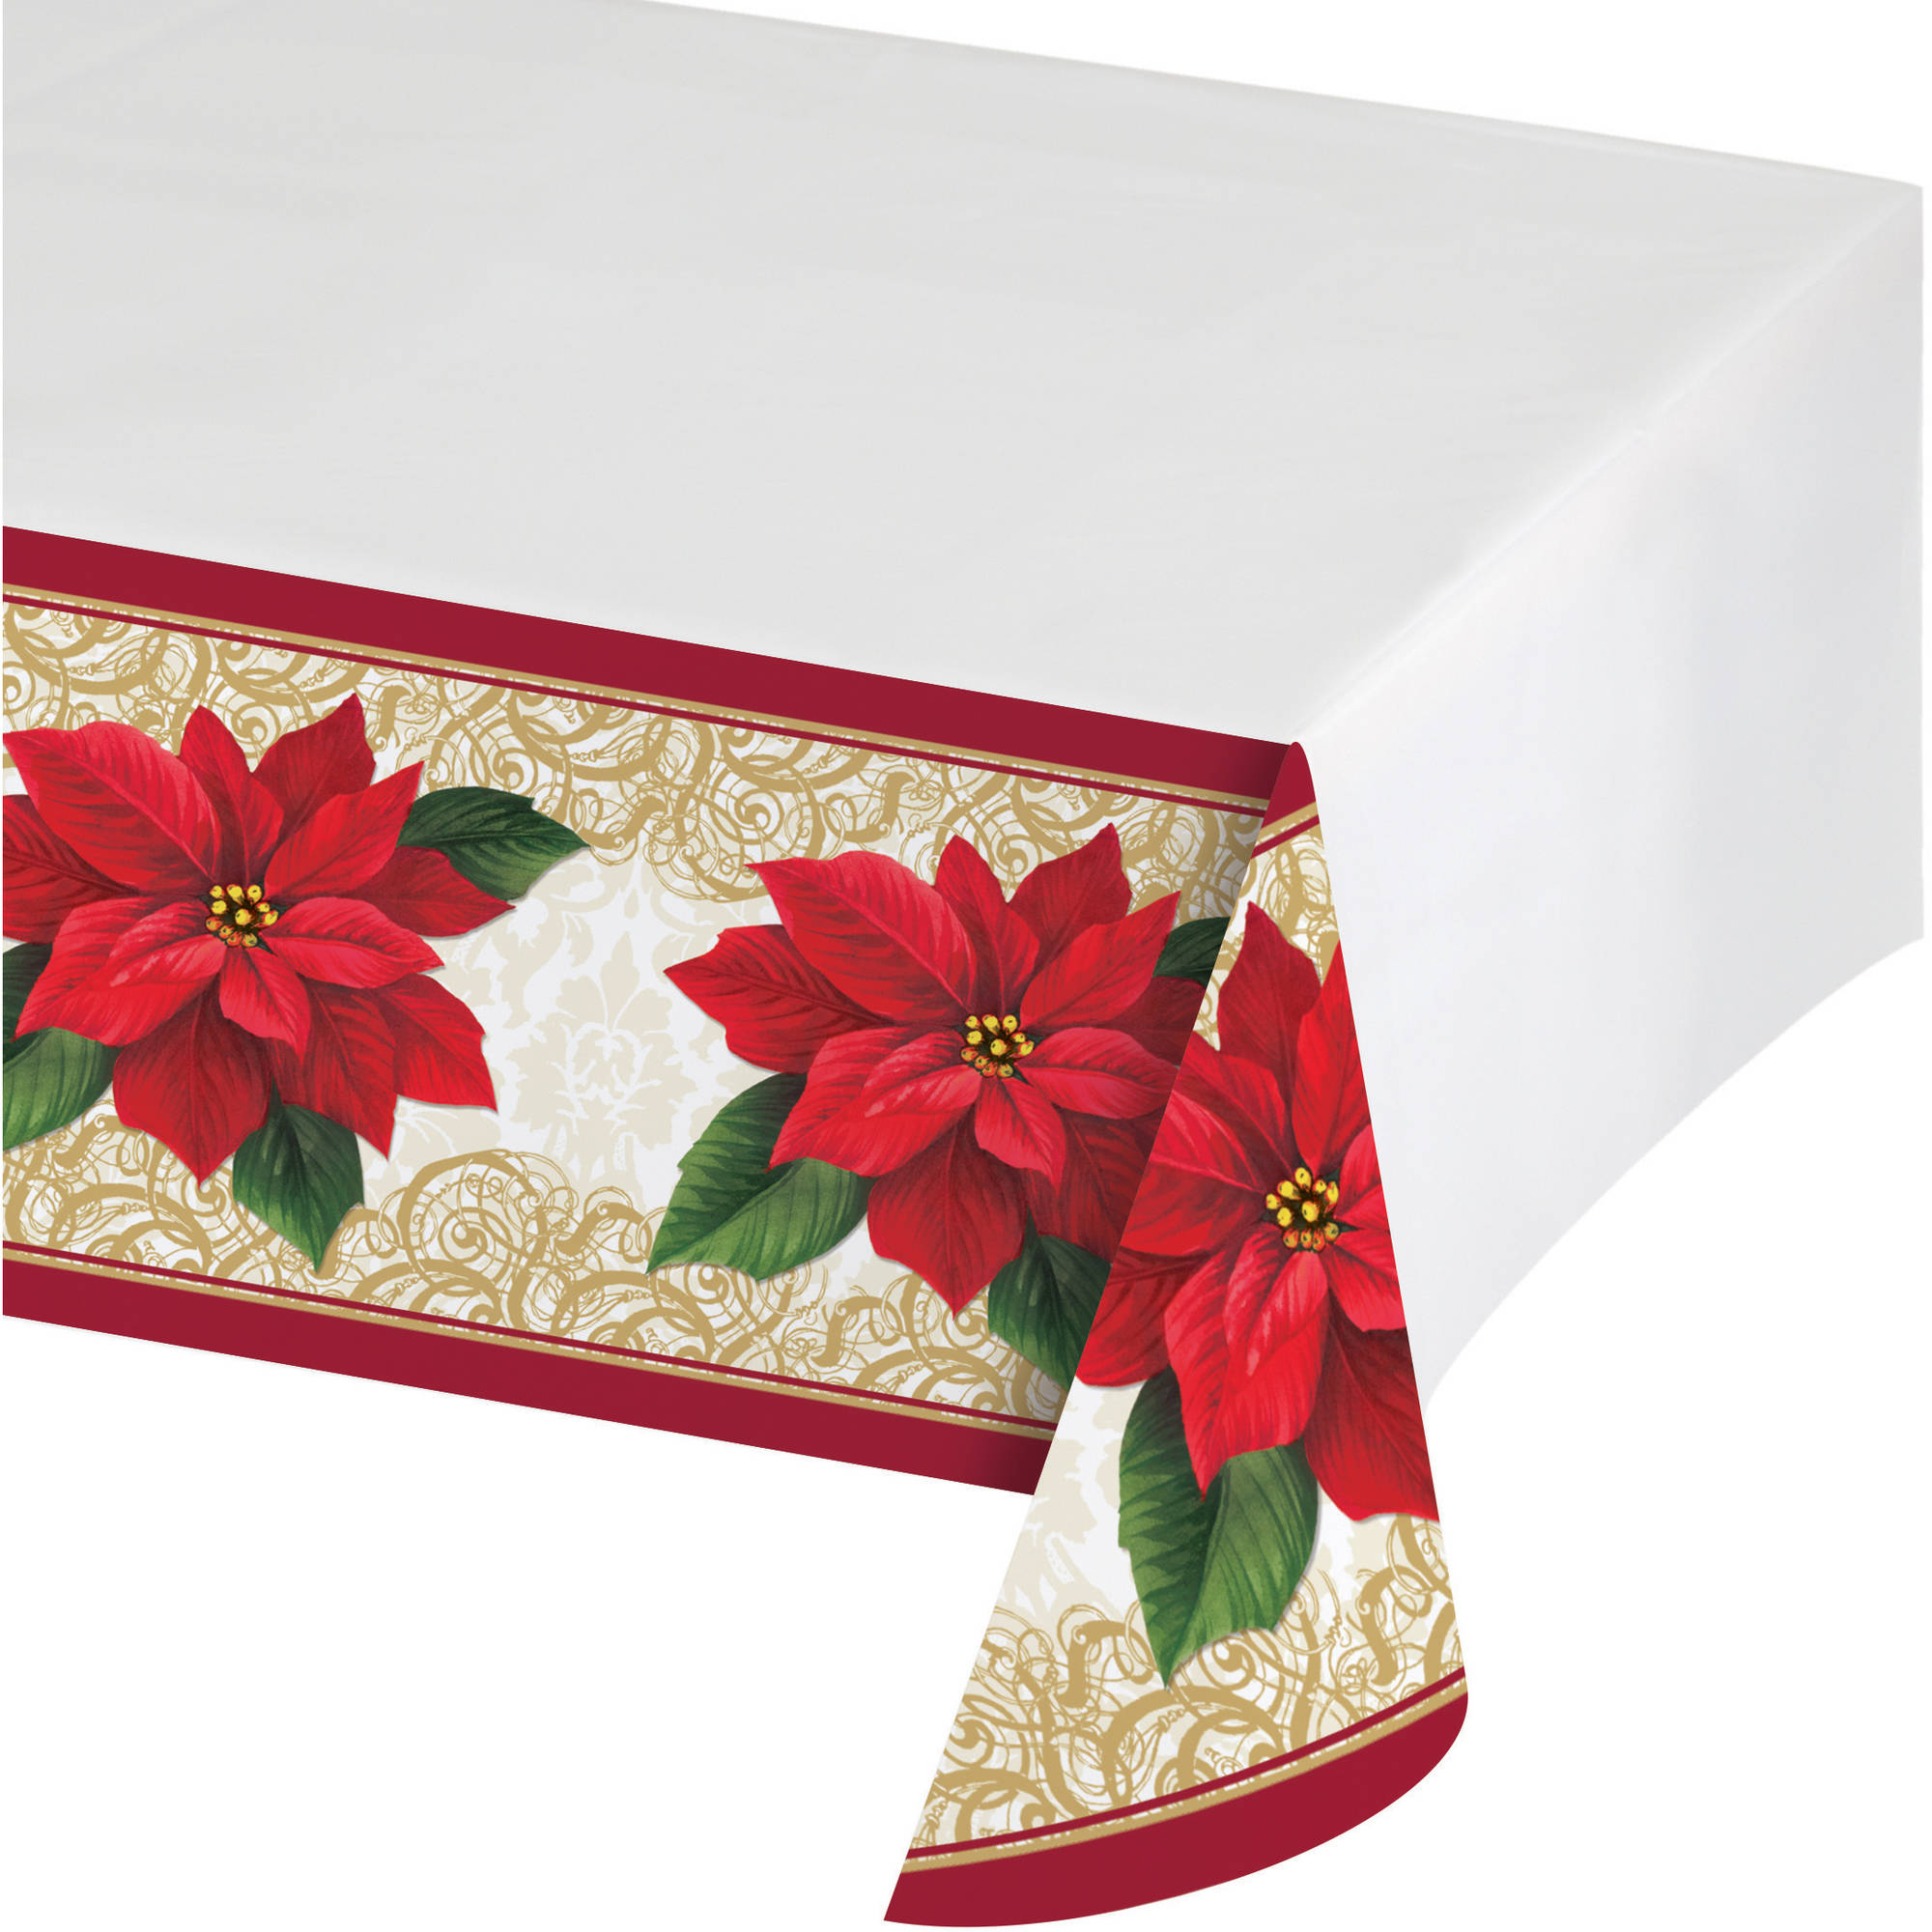 Christmas Tablecloths Australia Unique Party 49773 Plastic Cardinal Christmas Tablecloth 7ft X